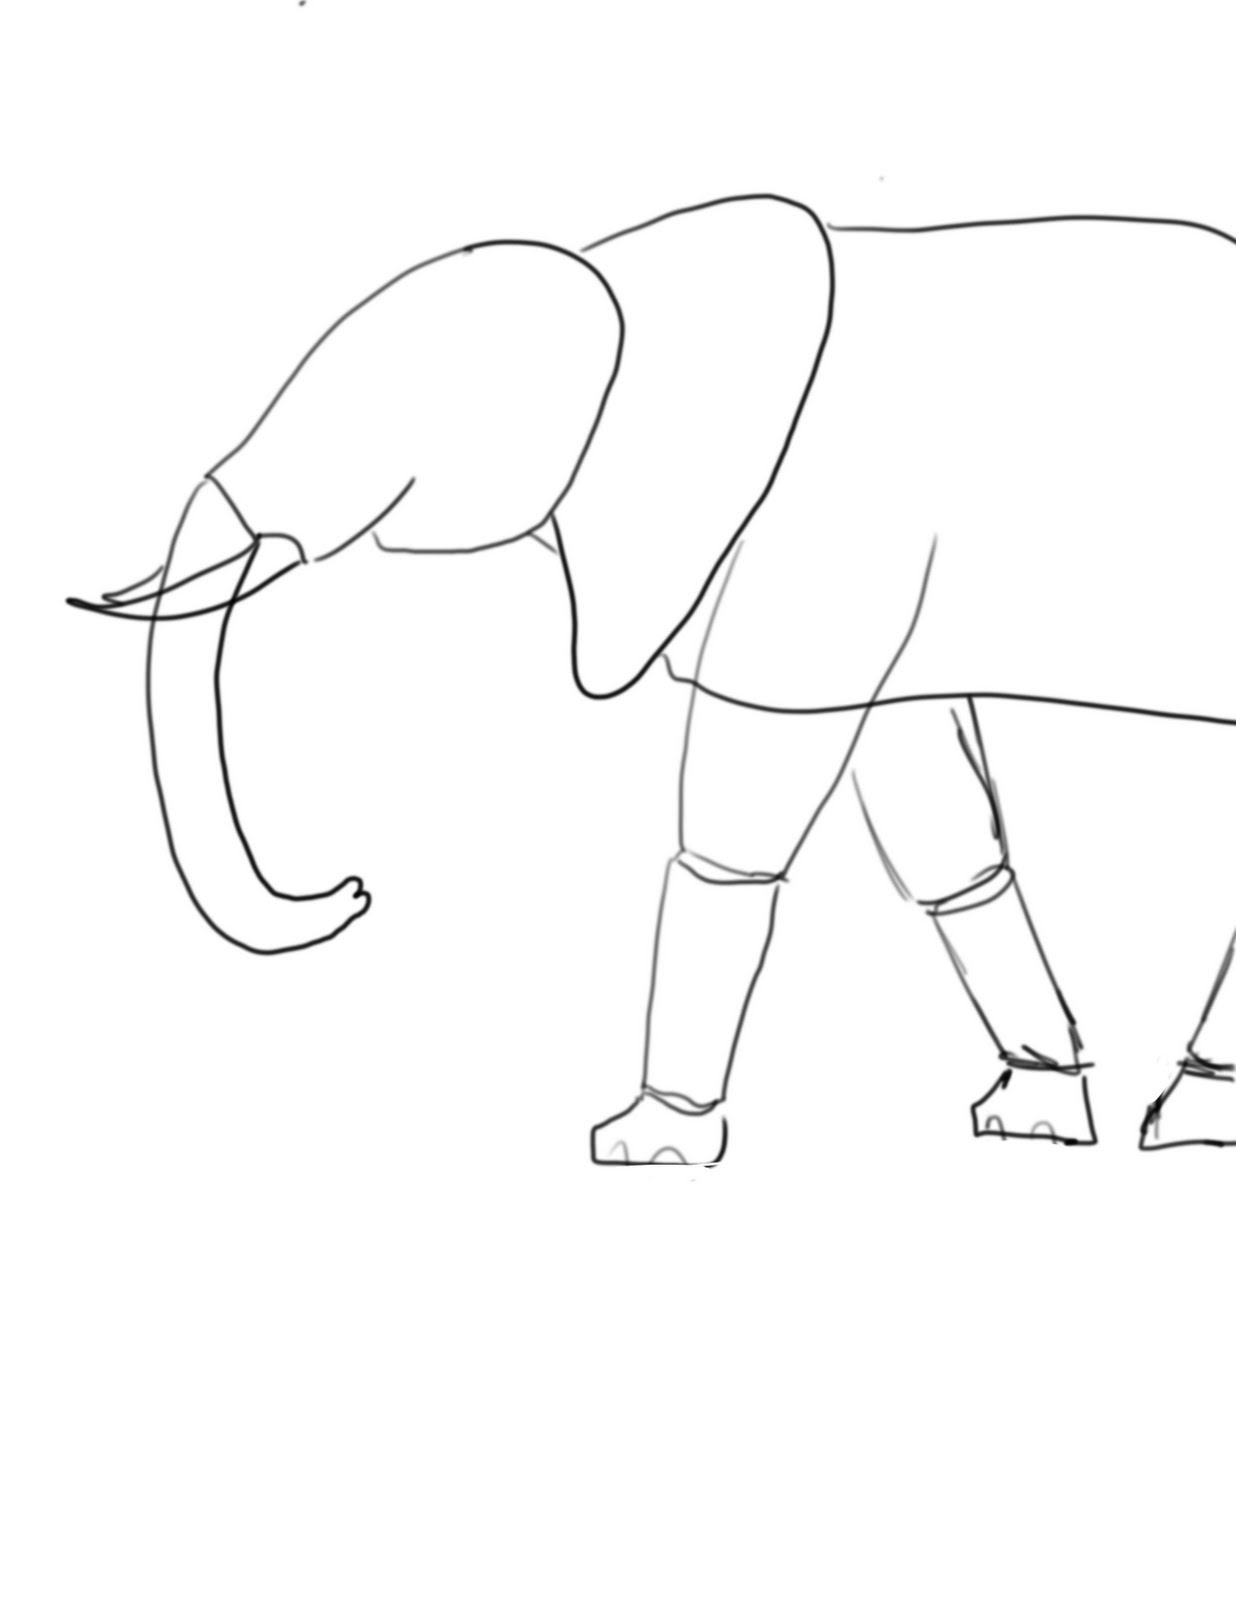 Ashby Animation Understanding The Basic Shapes Of An Elephant